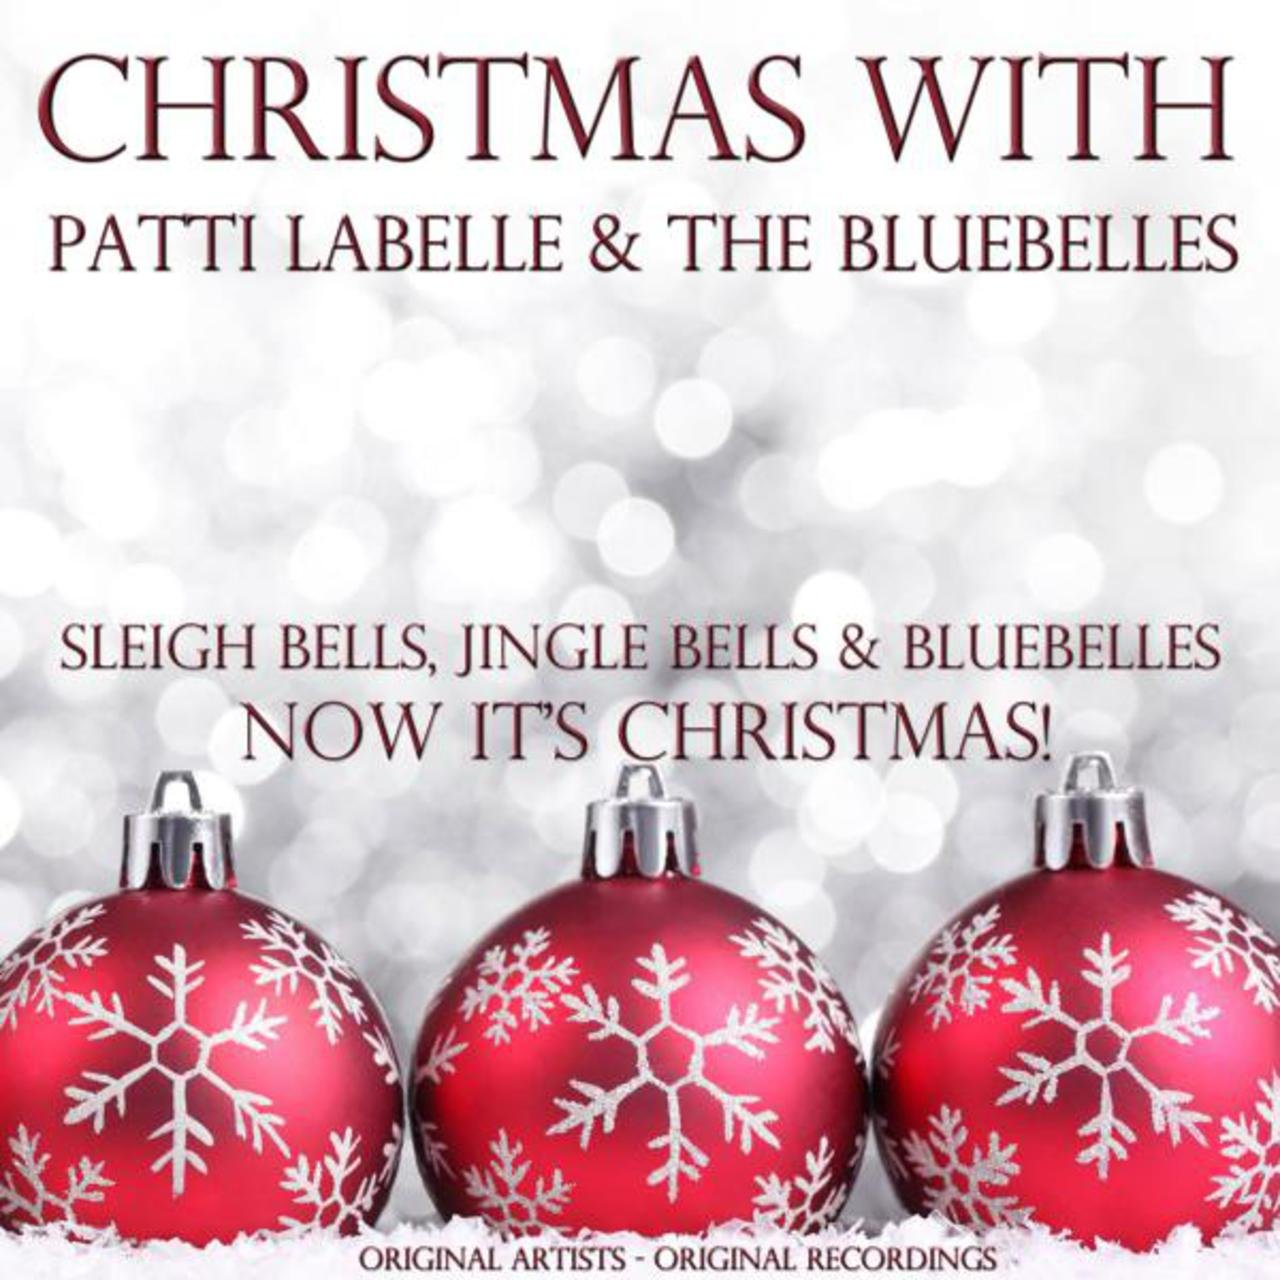 TIDAL: Listen to Christmas With: Patti Labelle & the Bluebelles on TIDAL